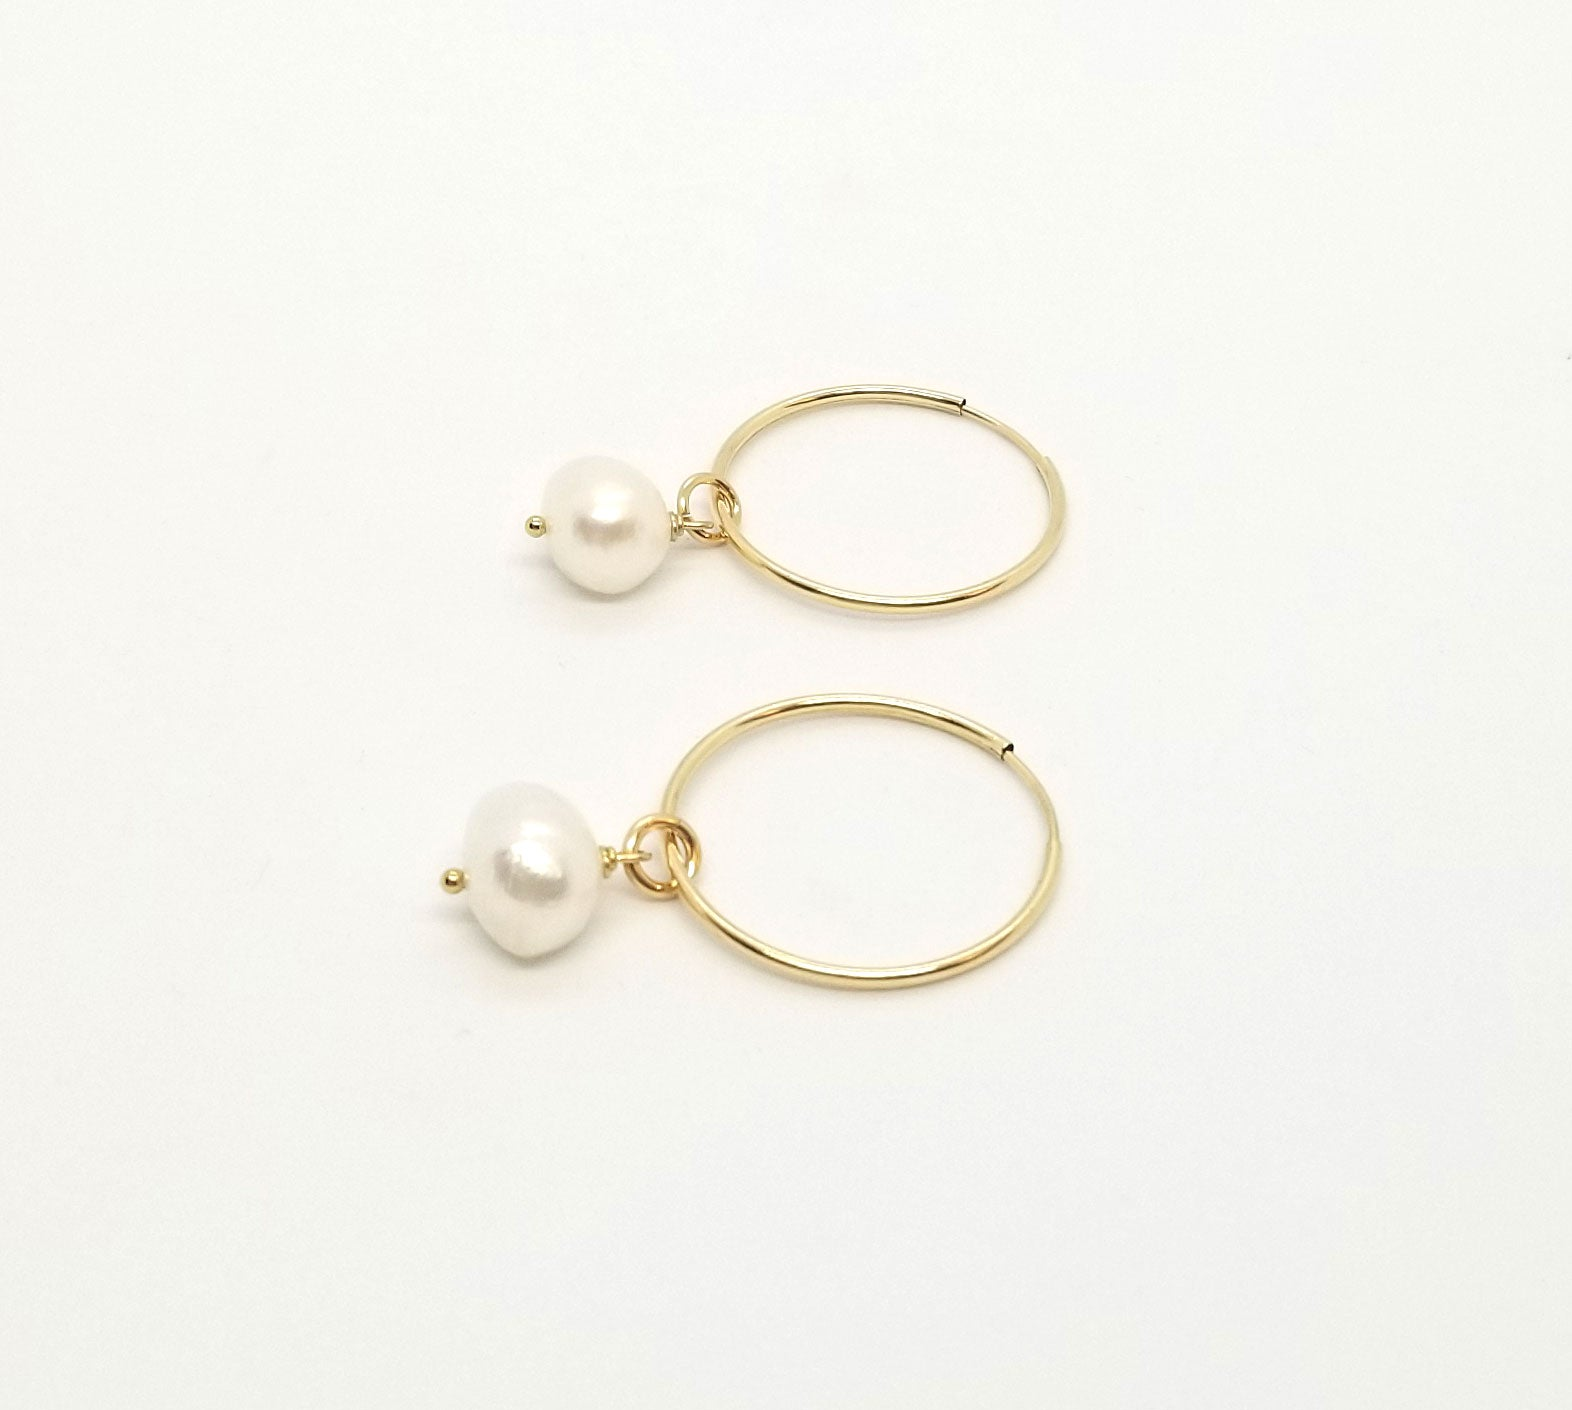 Gold Hoops With Freshwater Pearl Removable Charm Earrings